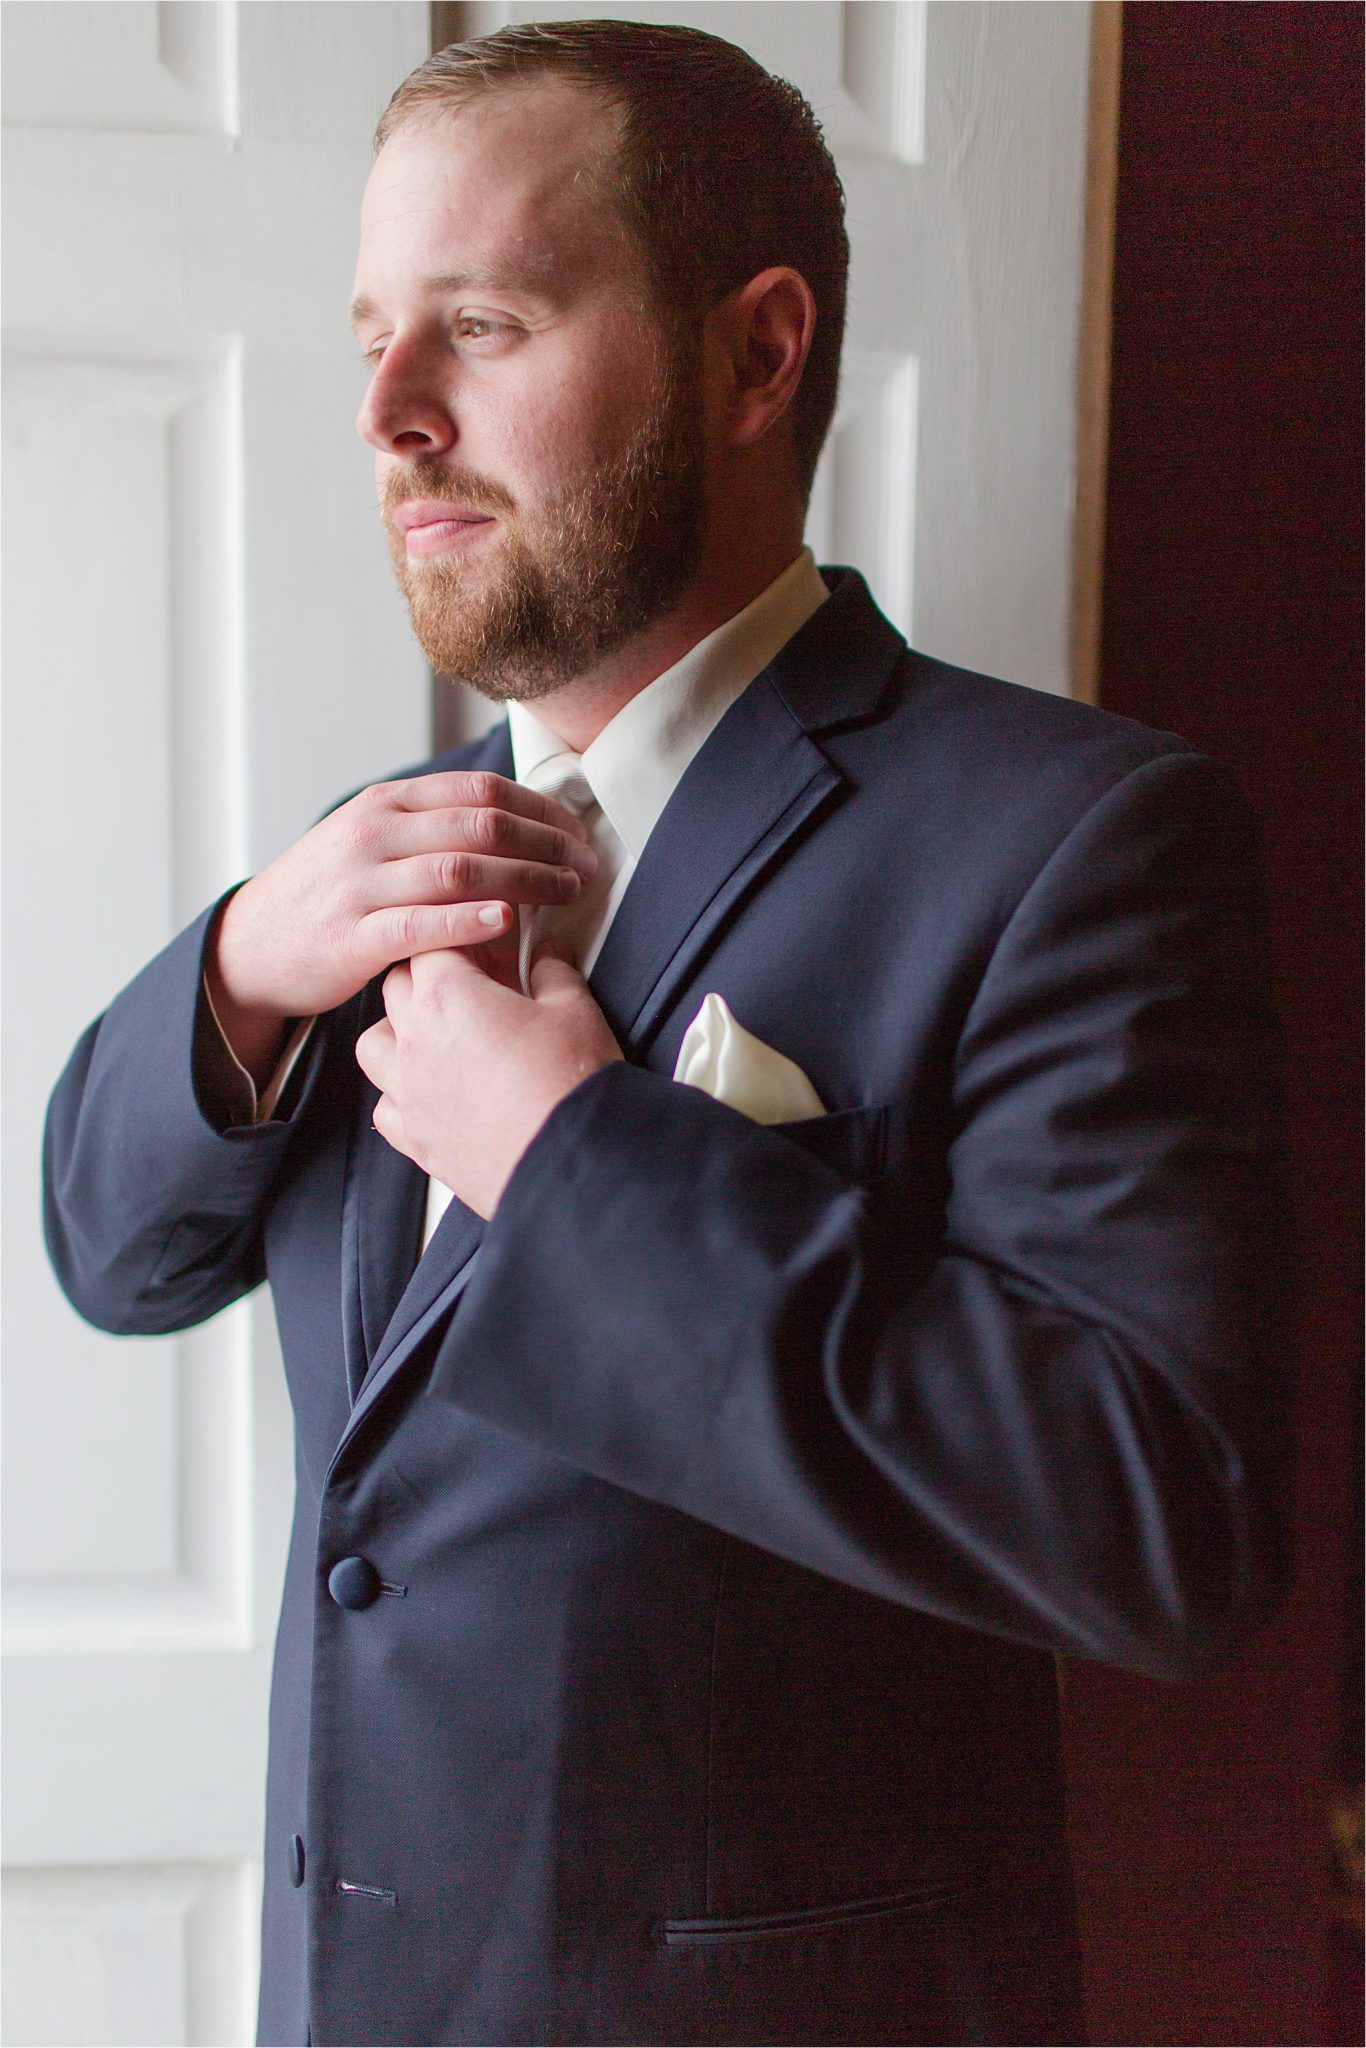 Groom-beard-navy suit-redhead-ivory handkerchief